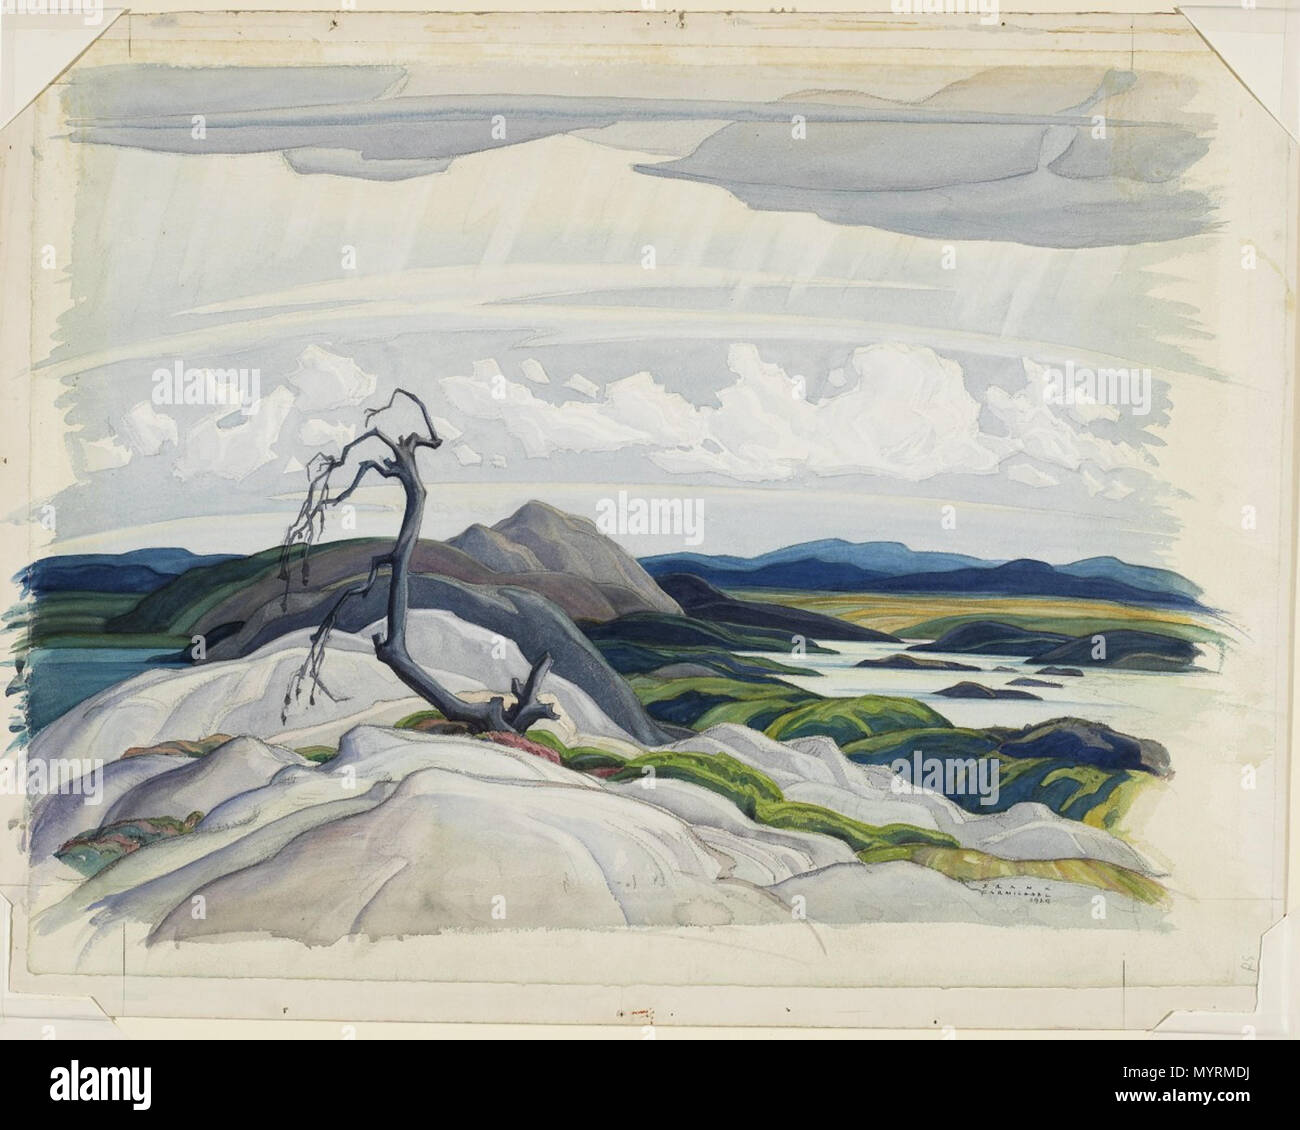 . English: Franklin Carmichael, The Whitefish Hills, 1929, watercolour over graphite on wove paper, 51.8 x 69.1 cm  . 21 December 2005, 10:41:26. Franklin Carmichael 1 Franklin Carmichael - The Whitefish Hills Stock Photo